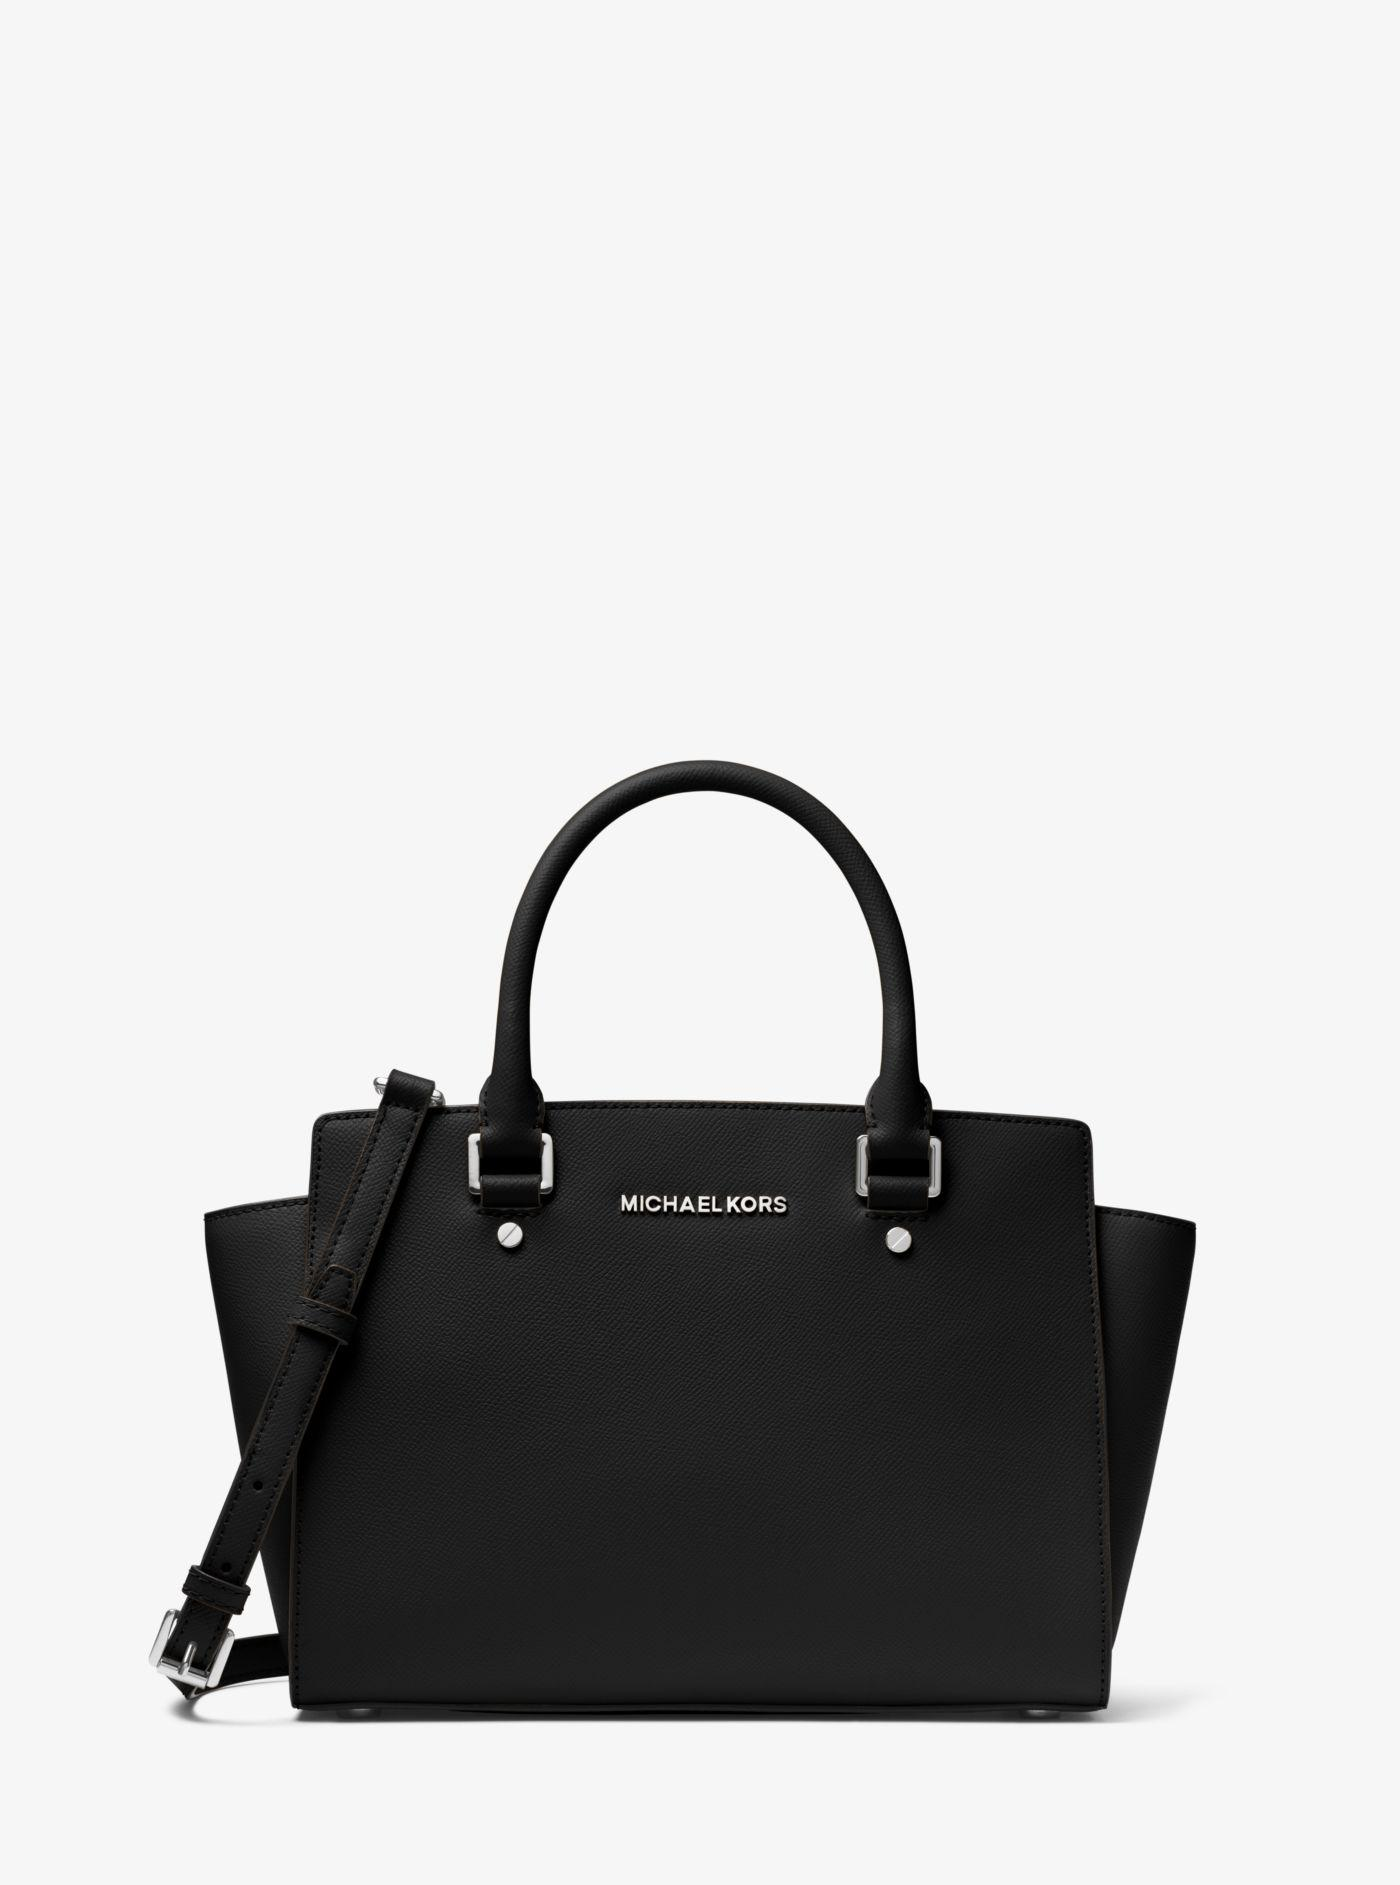 cfebed1df195 Michael Kors - Black Selma Saffiano Leather Medium Satchel - Lyst. View  fullscreen